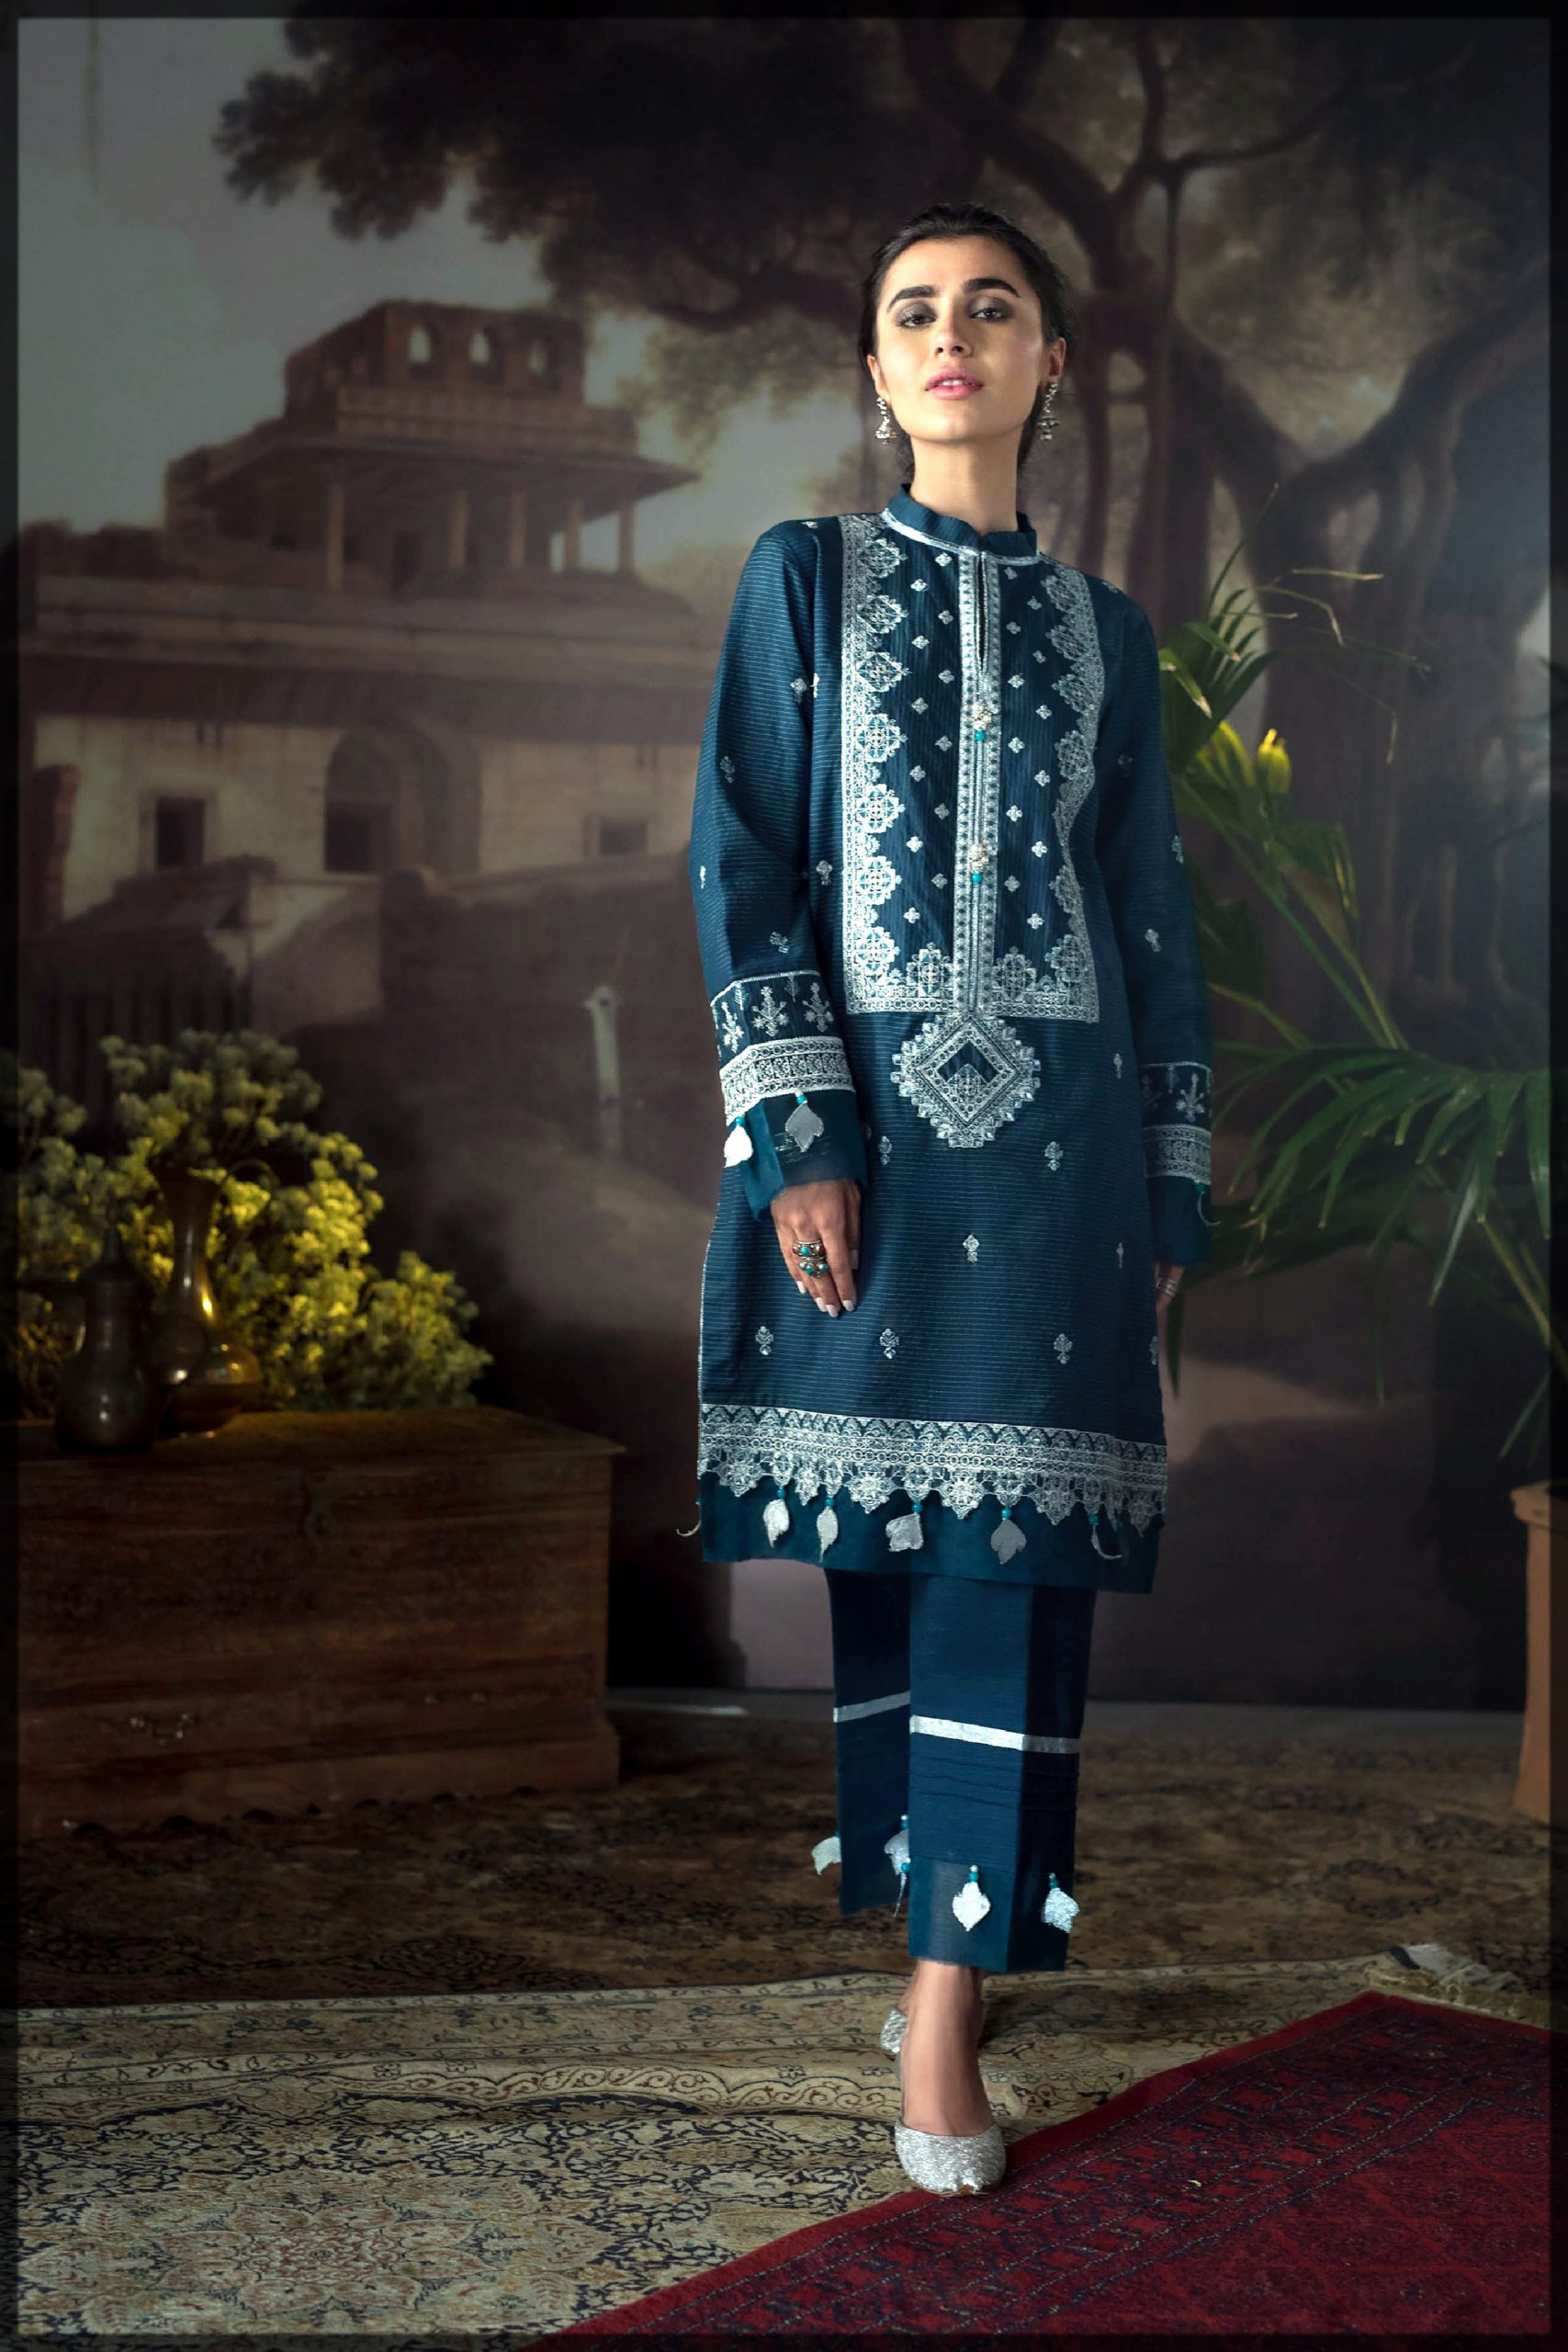 dazzling 2PC winter collection